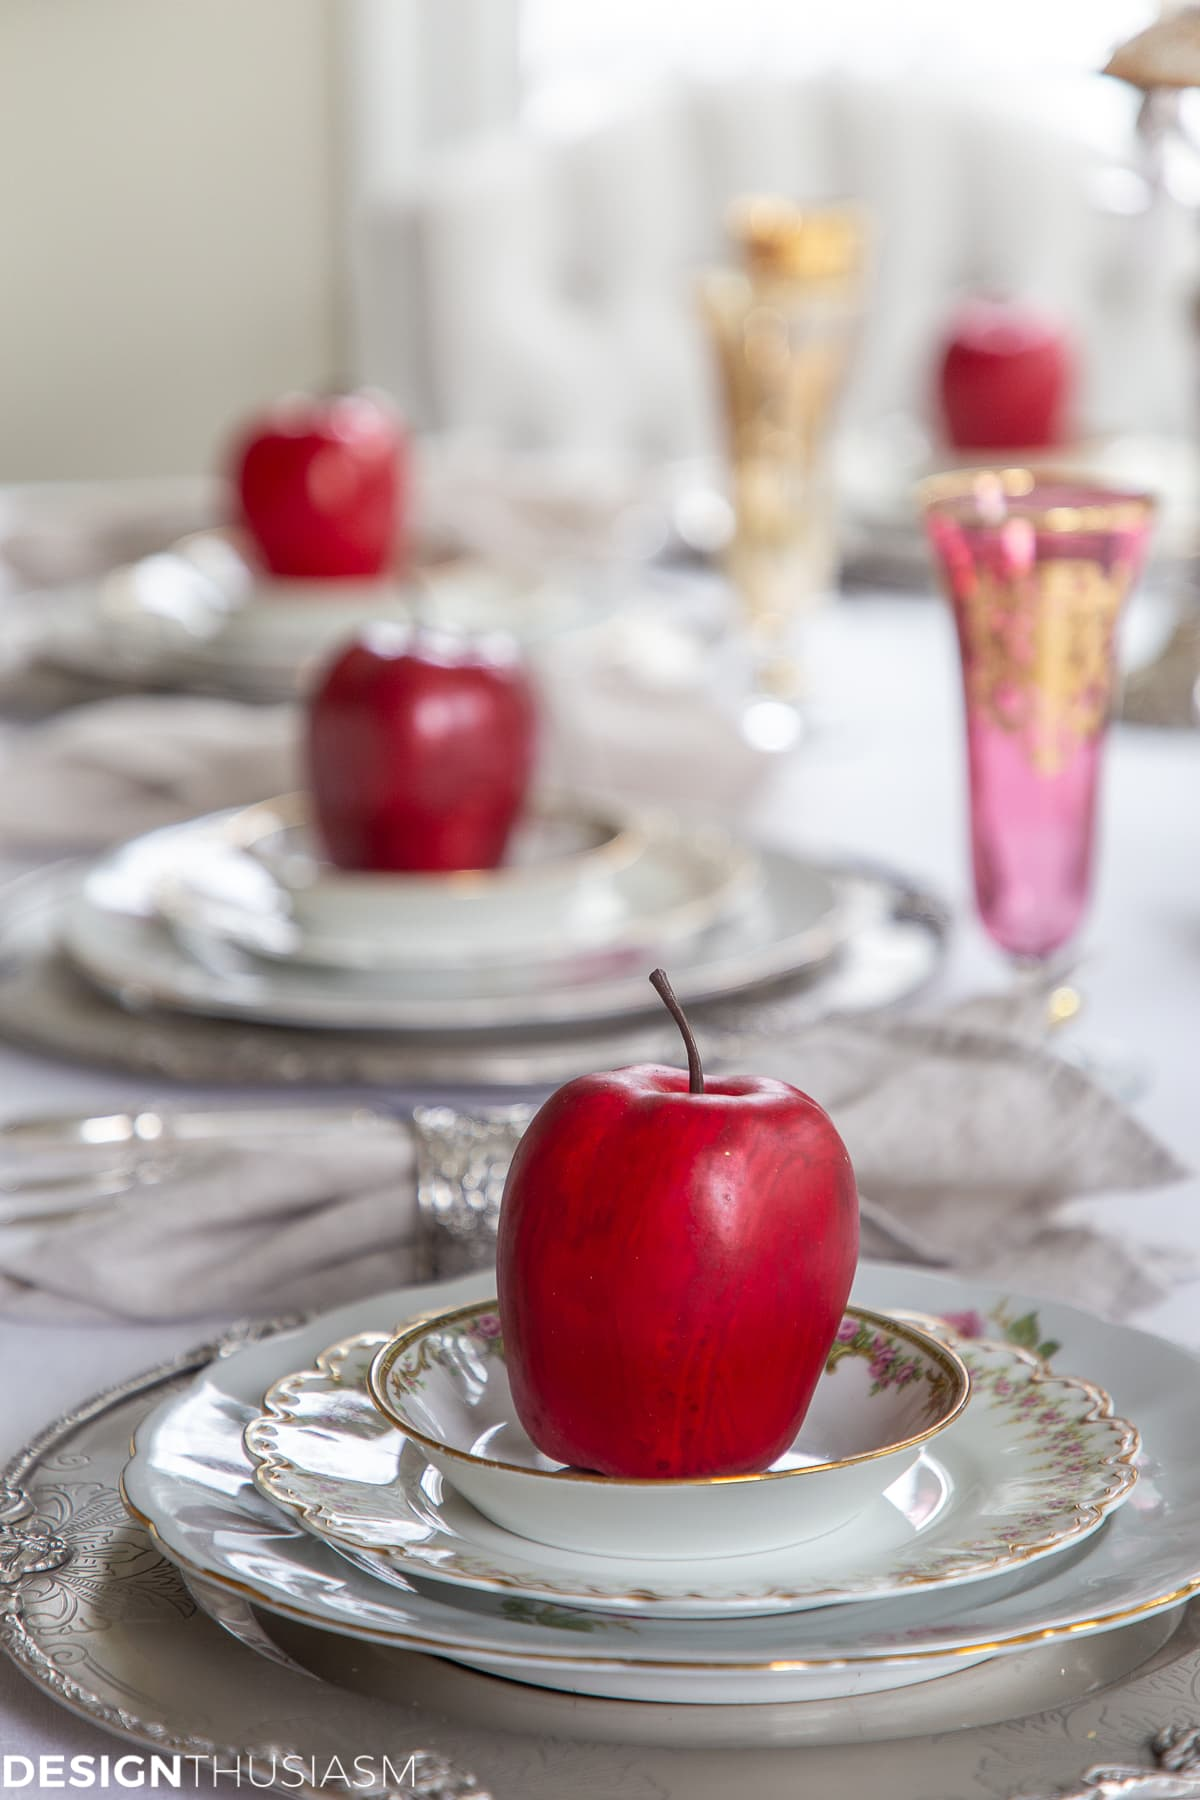 fall table setting with apples on the plates